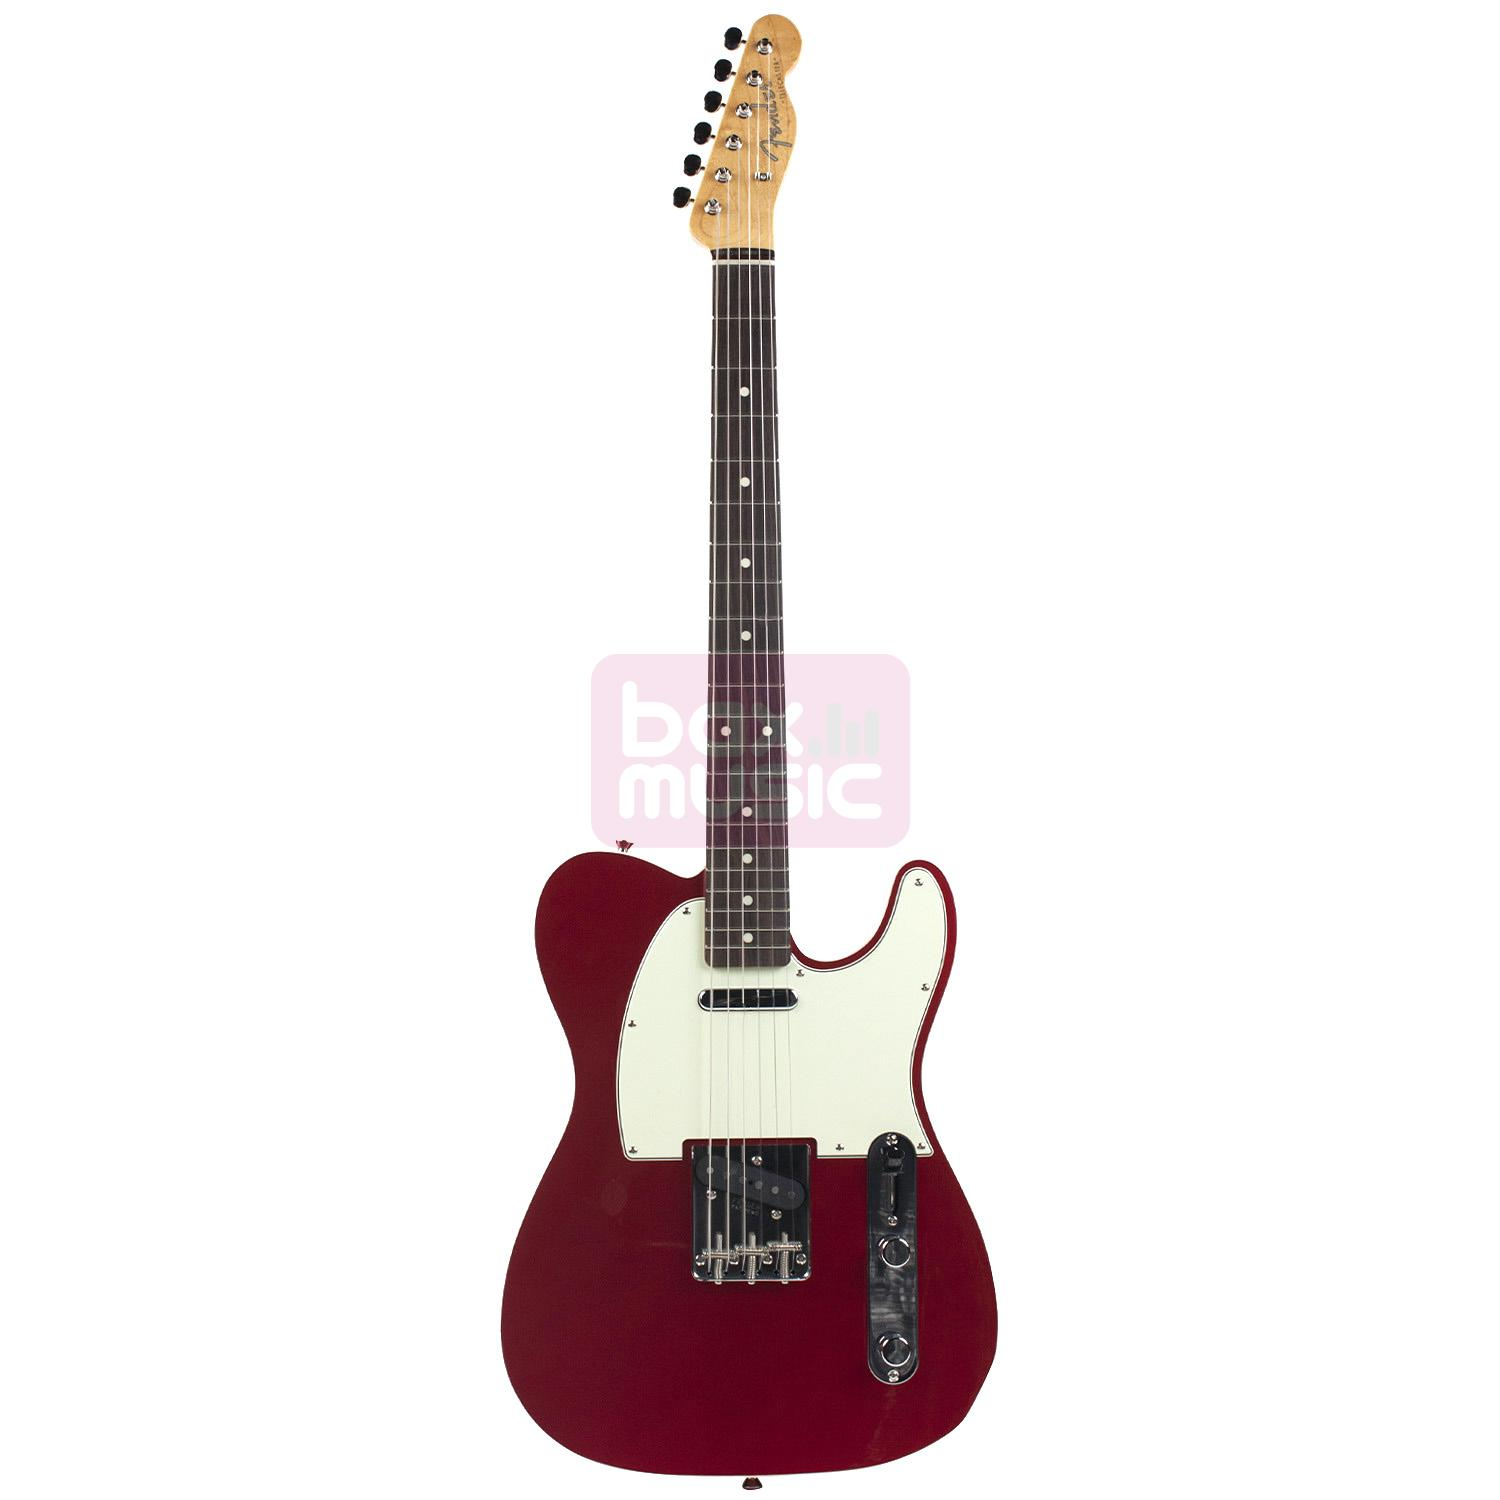 Fender Vintage 62 Telecaster Bound Edges Candy Apple Red RW